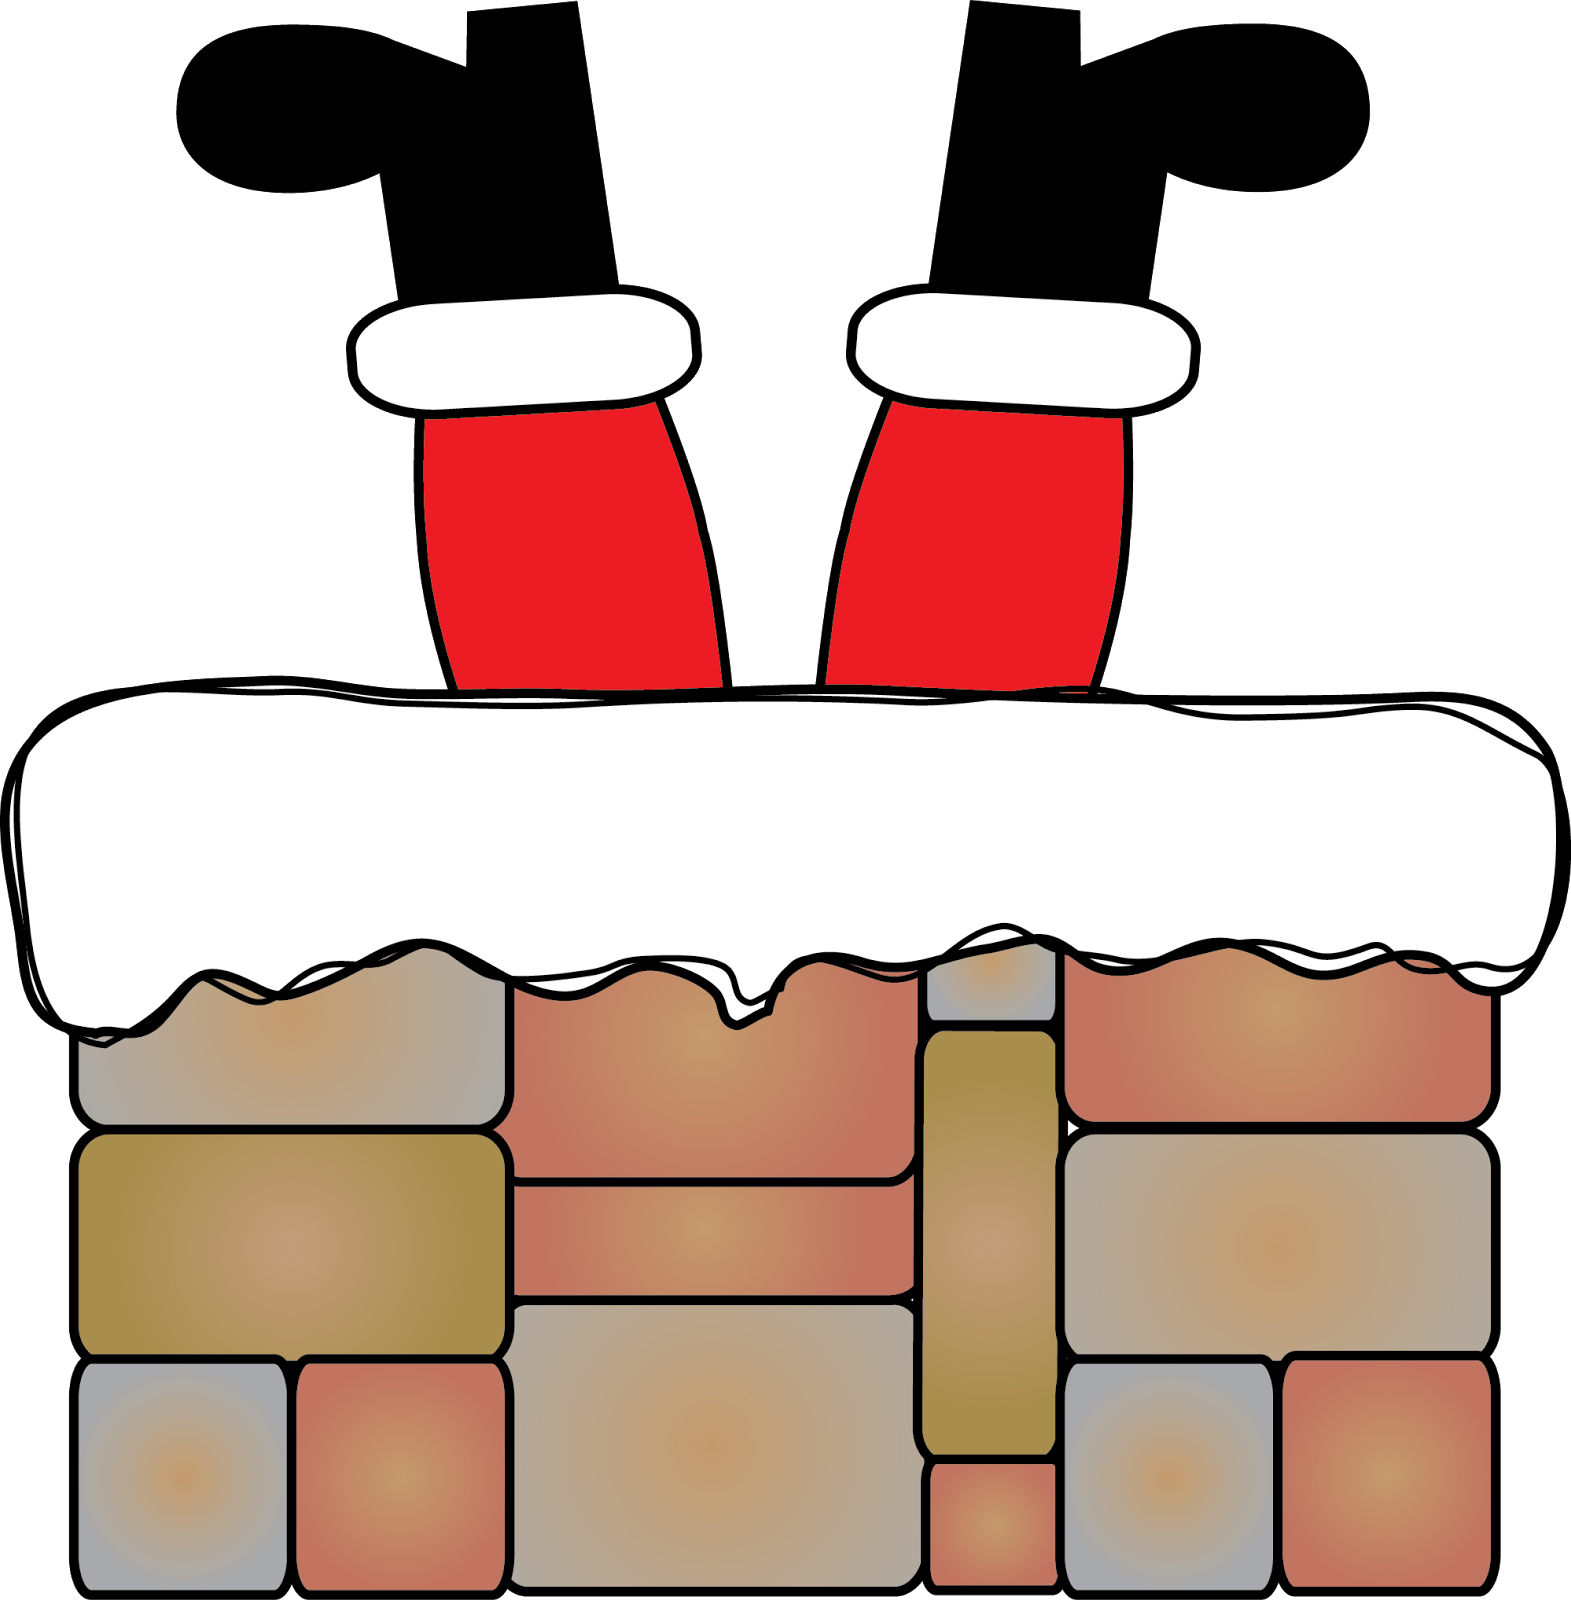 Santa Stuck In Chimney Clipart · Donu0027t Get Stuck! Freebies and More! - Santa Chimney PNG HD